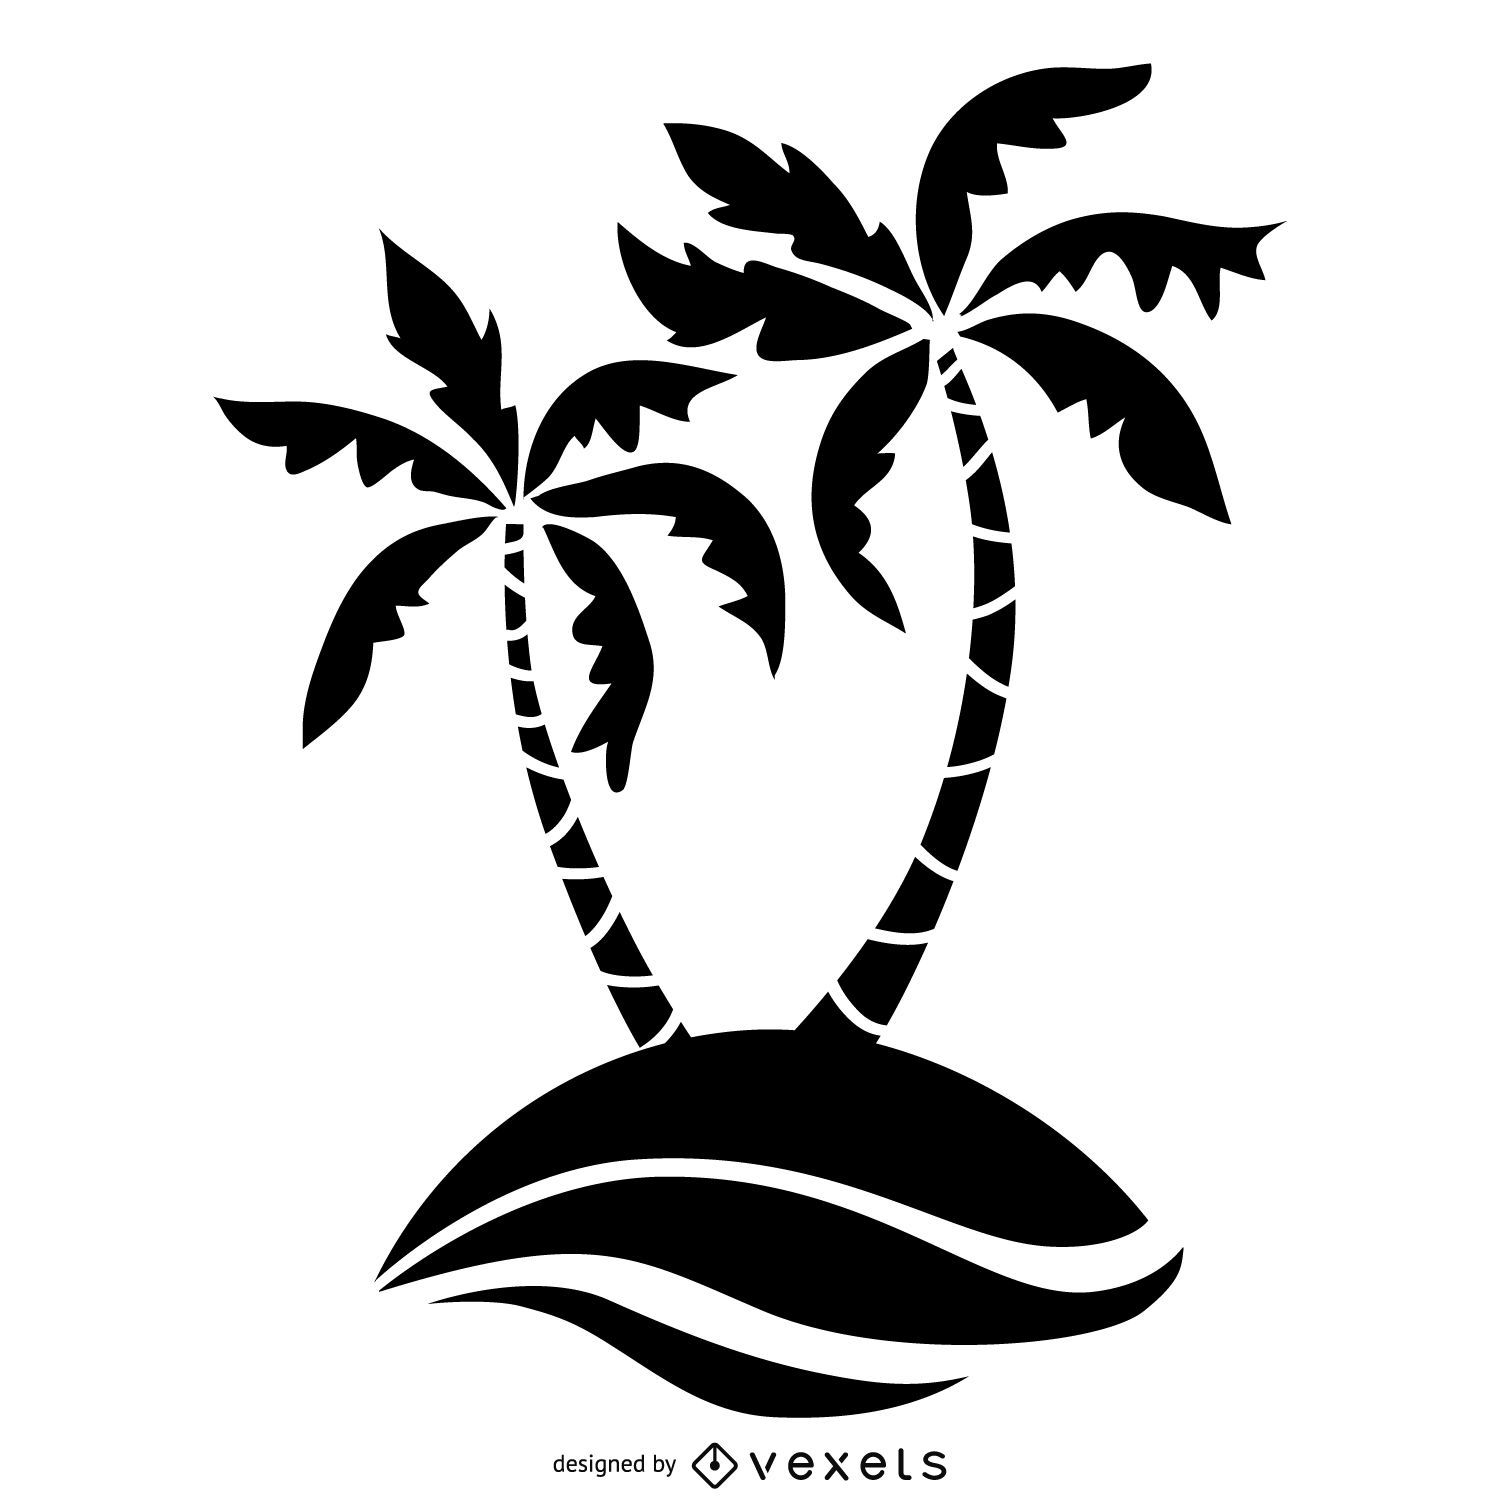 Palm Tree Silhouette Illustration